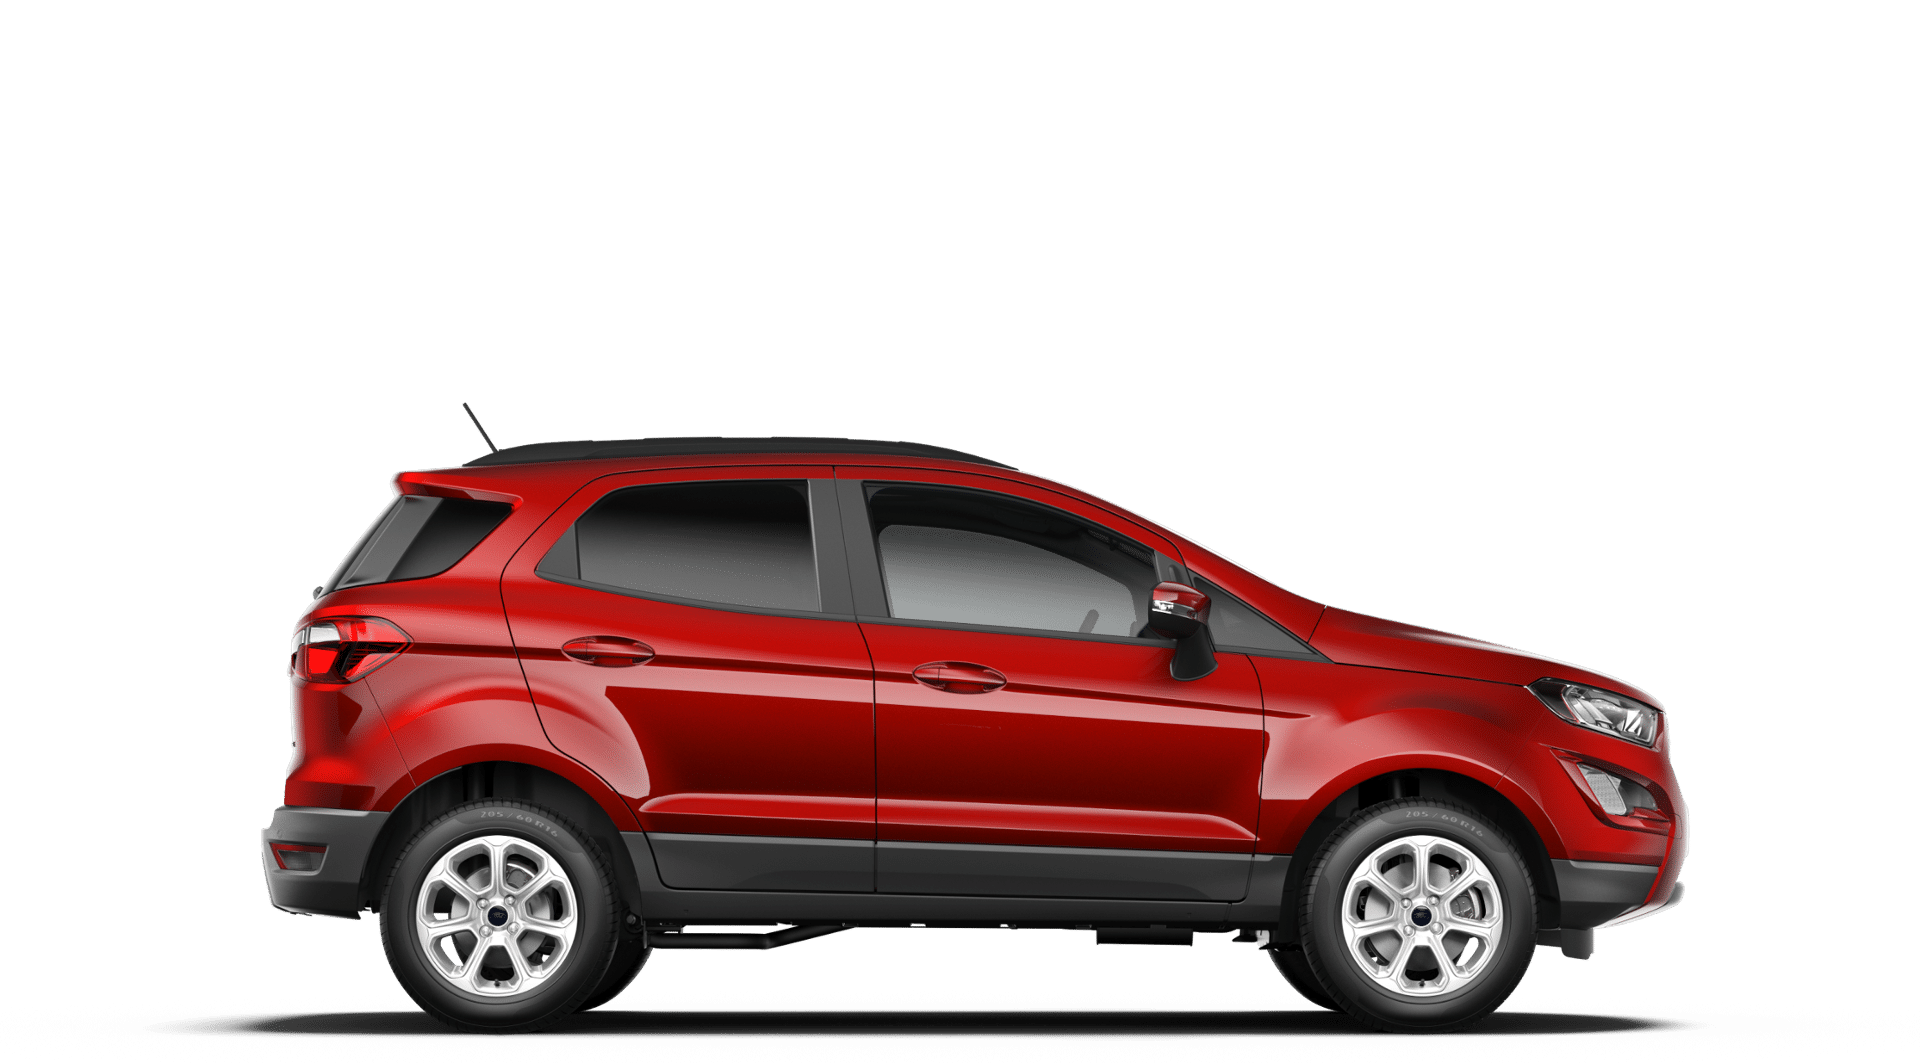 Exterior View Of 2018 Ecosport Ford Ecosport Ford Ford F150